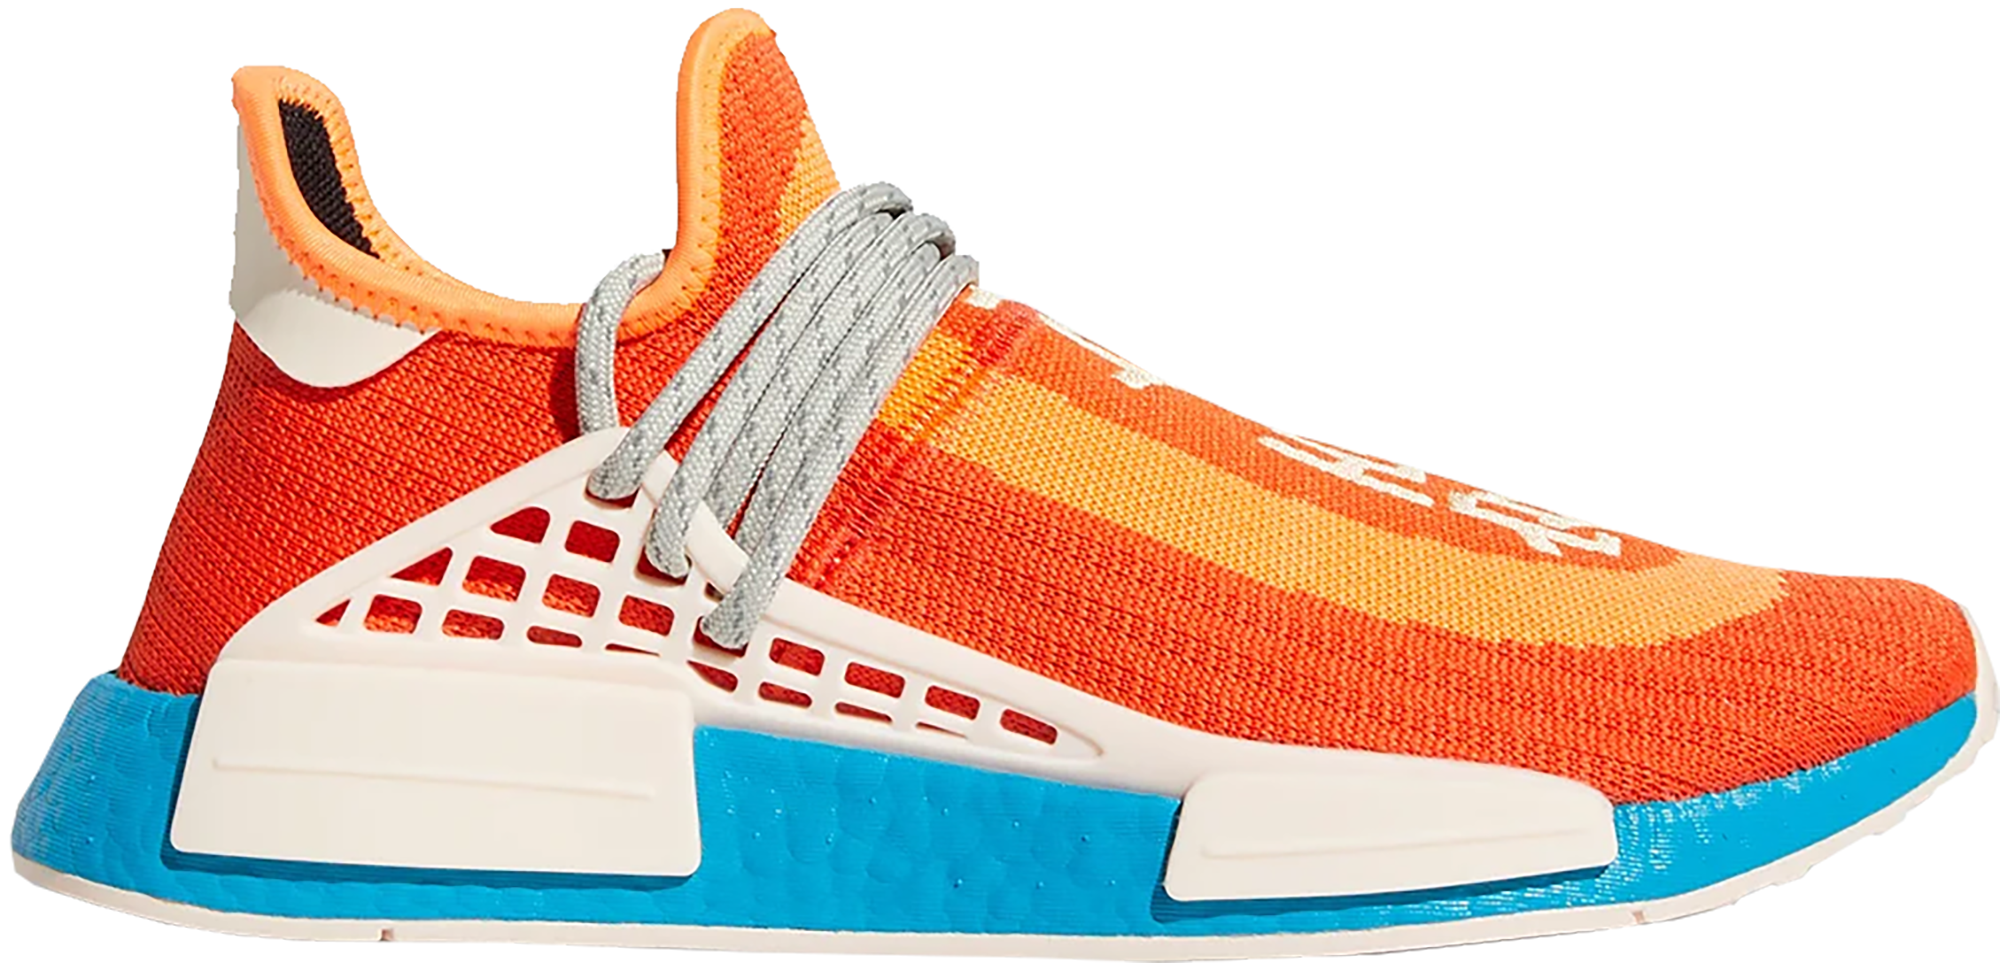 adidas NMD Shoes - Most Popular